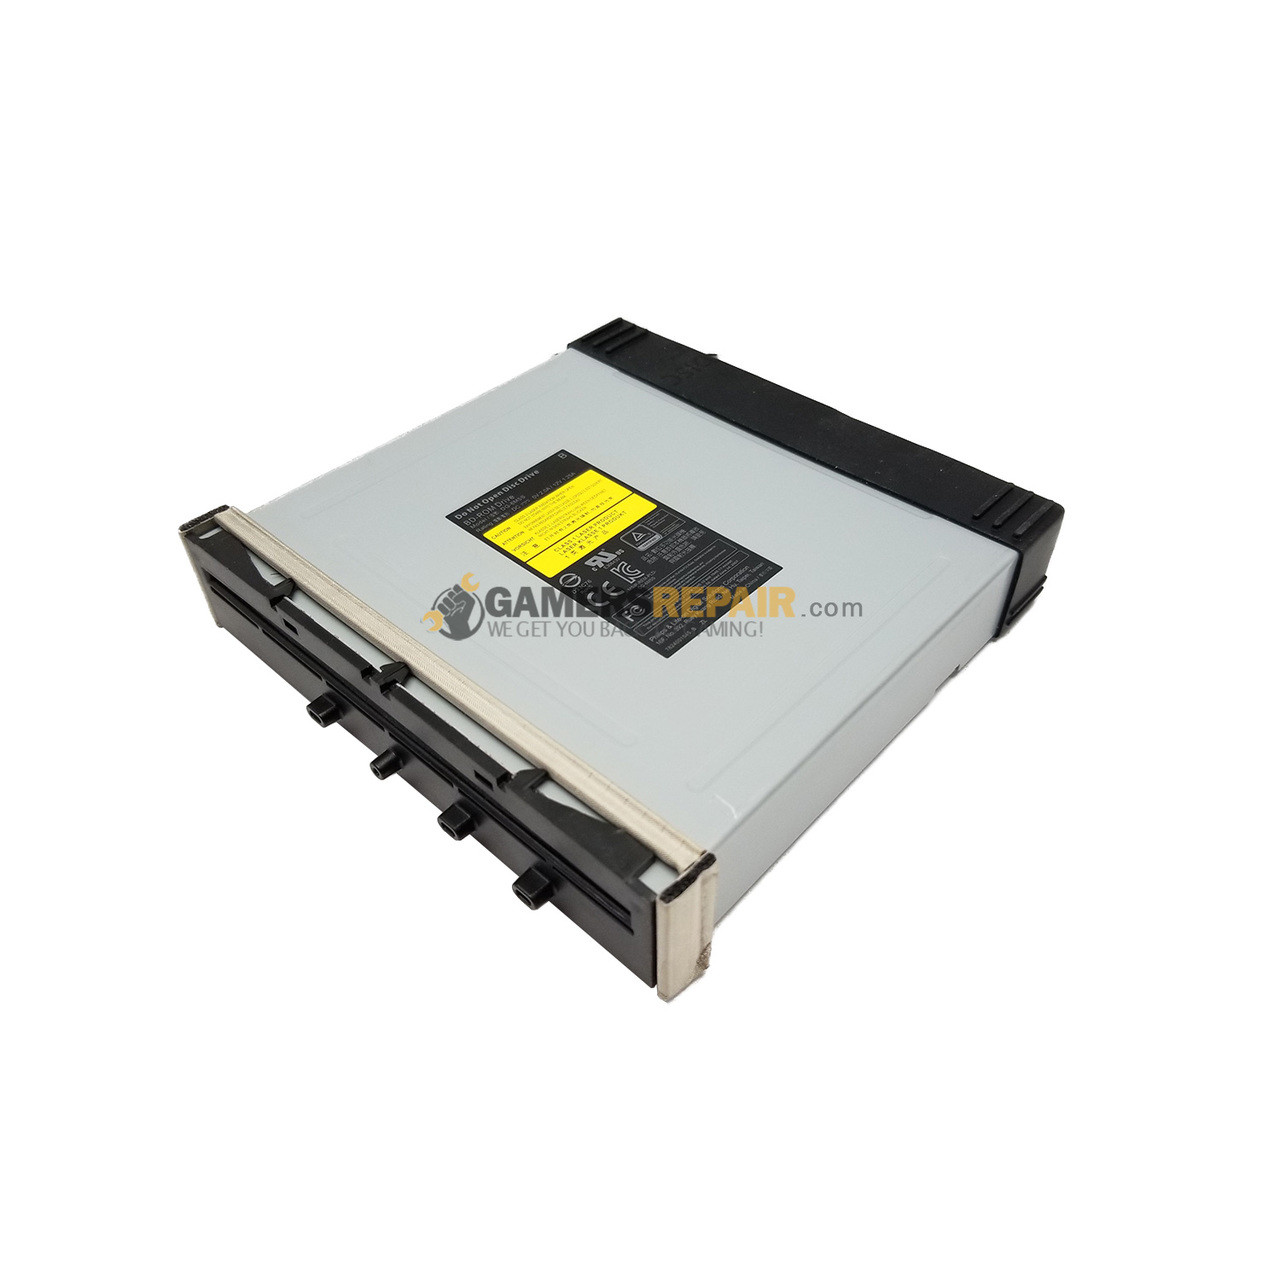 OEM Xbox ONE X Replacement Blu-Ray Disc Drive DG-6M5S